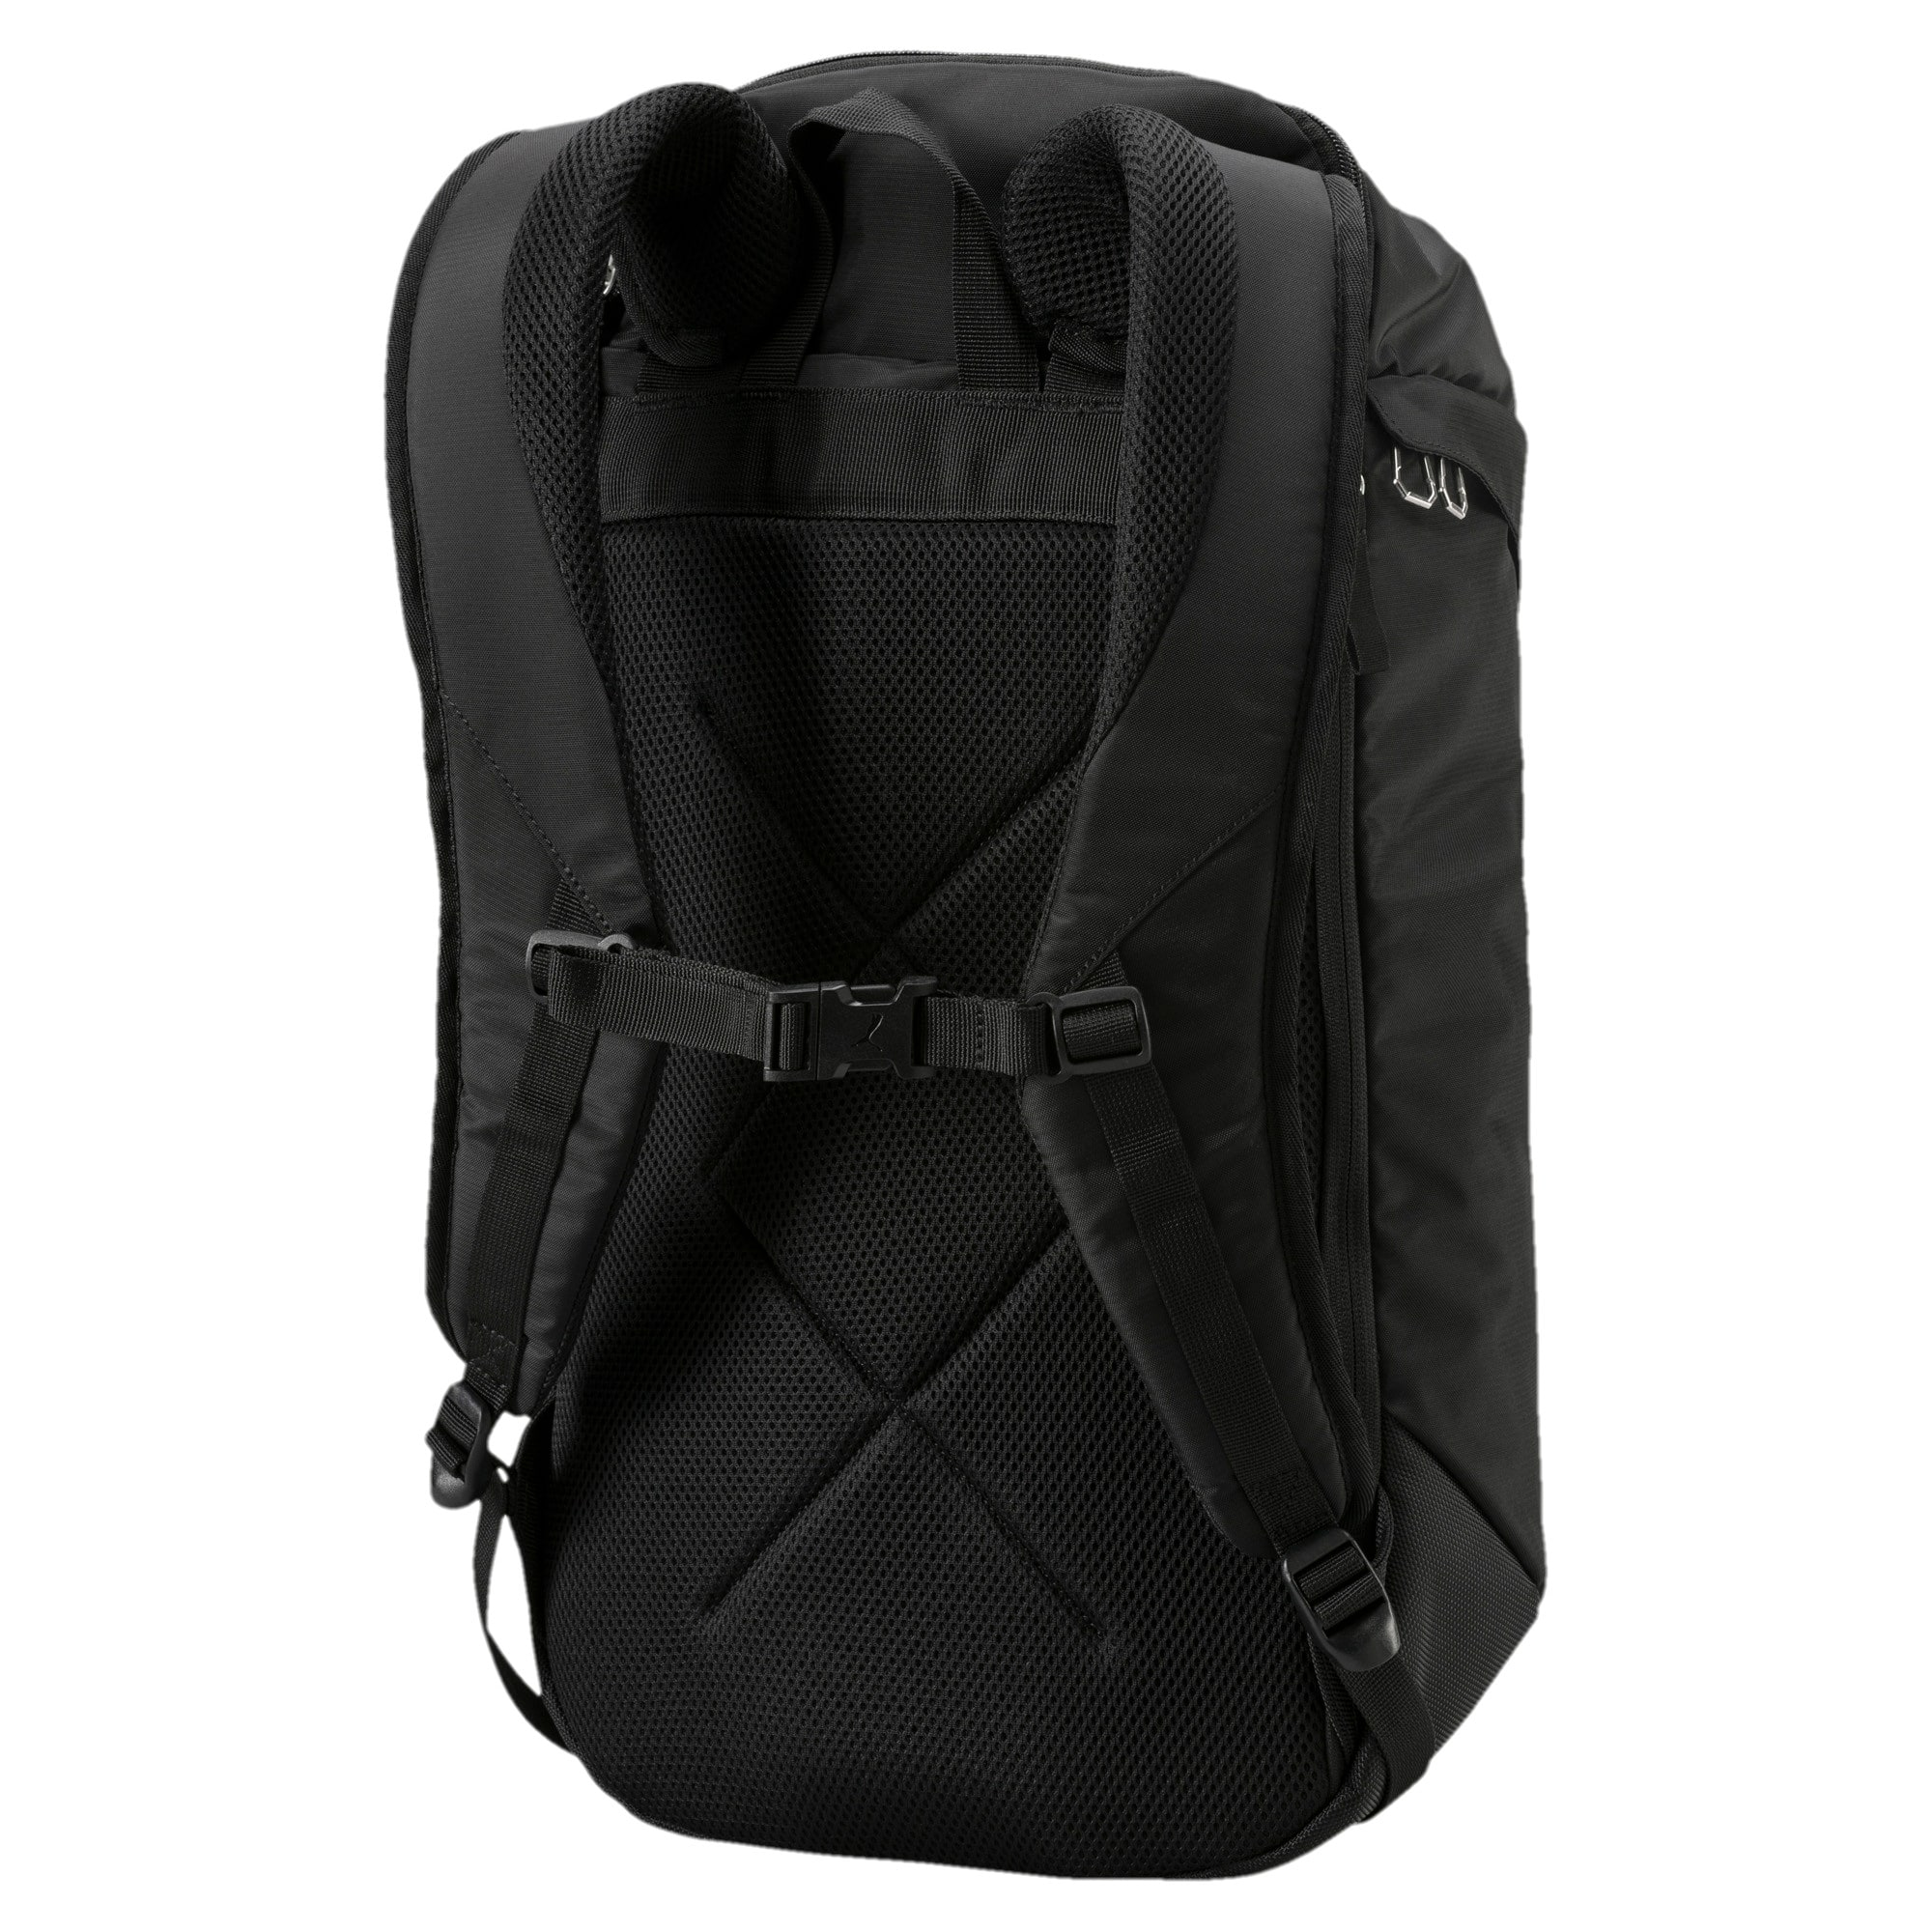 Thumbnail 2 of Evo Blaze Backpack, Puma Black, medium-IND